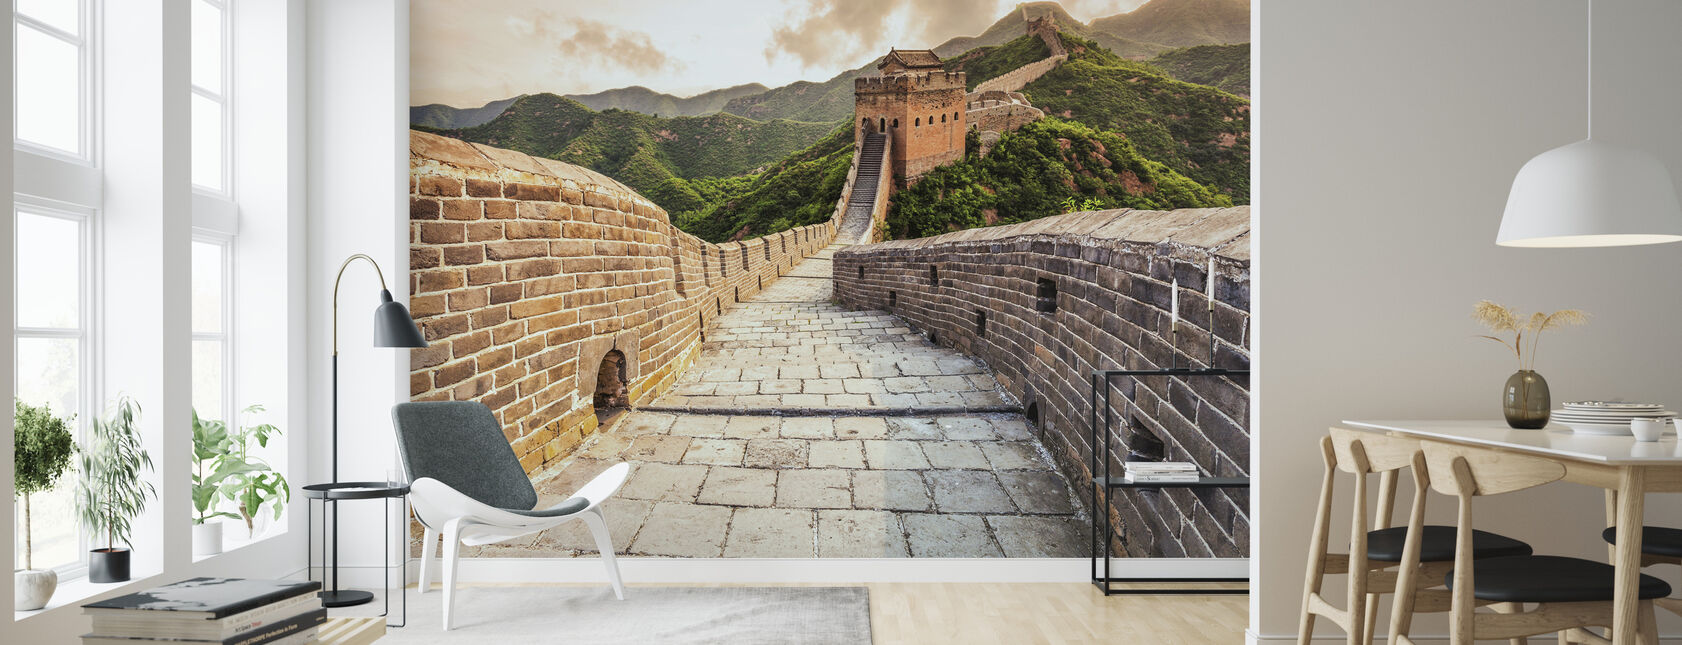 Great Wall of China - Wallpaper - Living Room